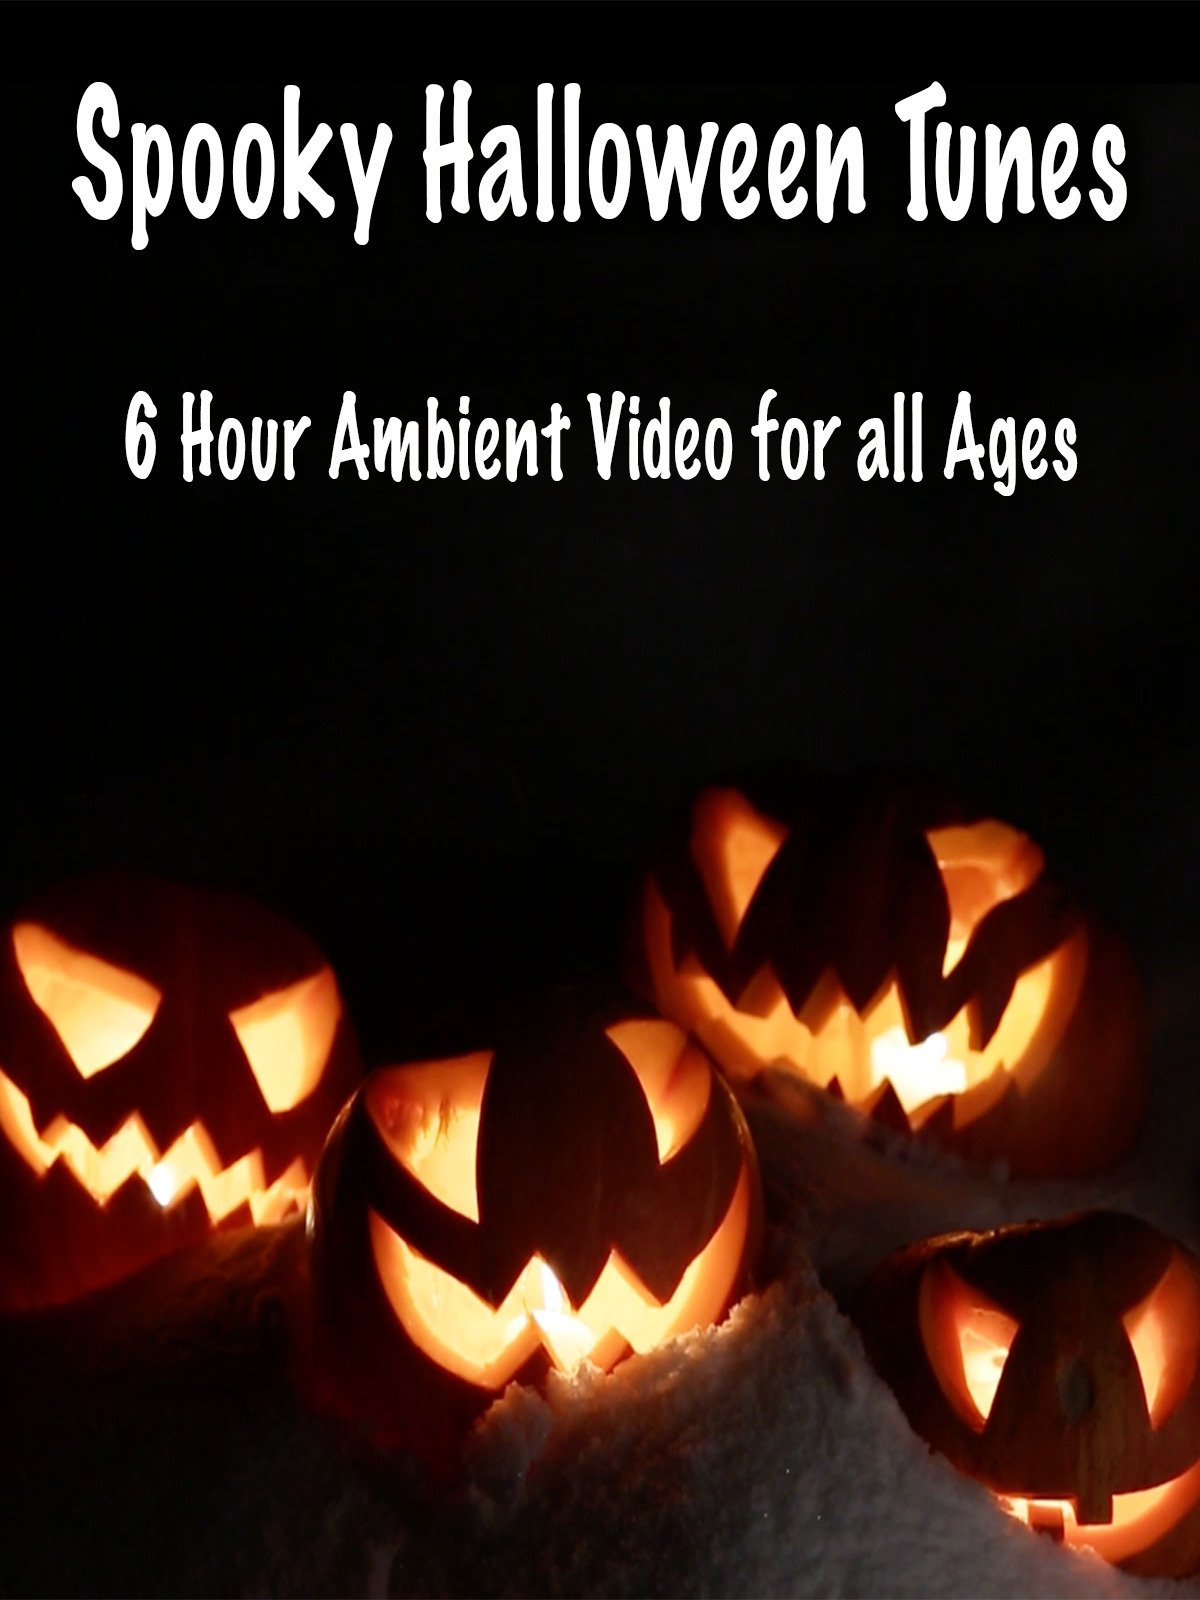 Spooky Halloween Tunes 6 Hour Ambient Video for All Ages